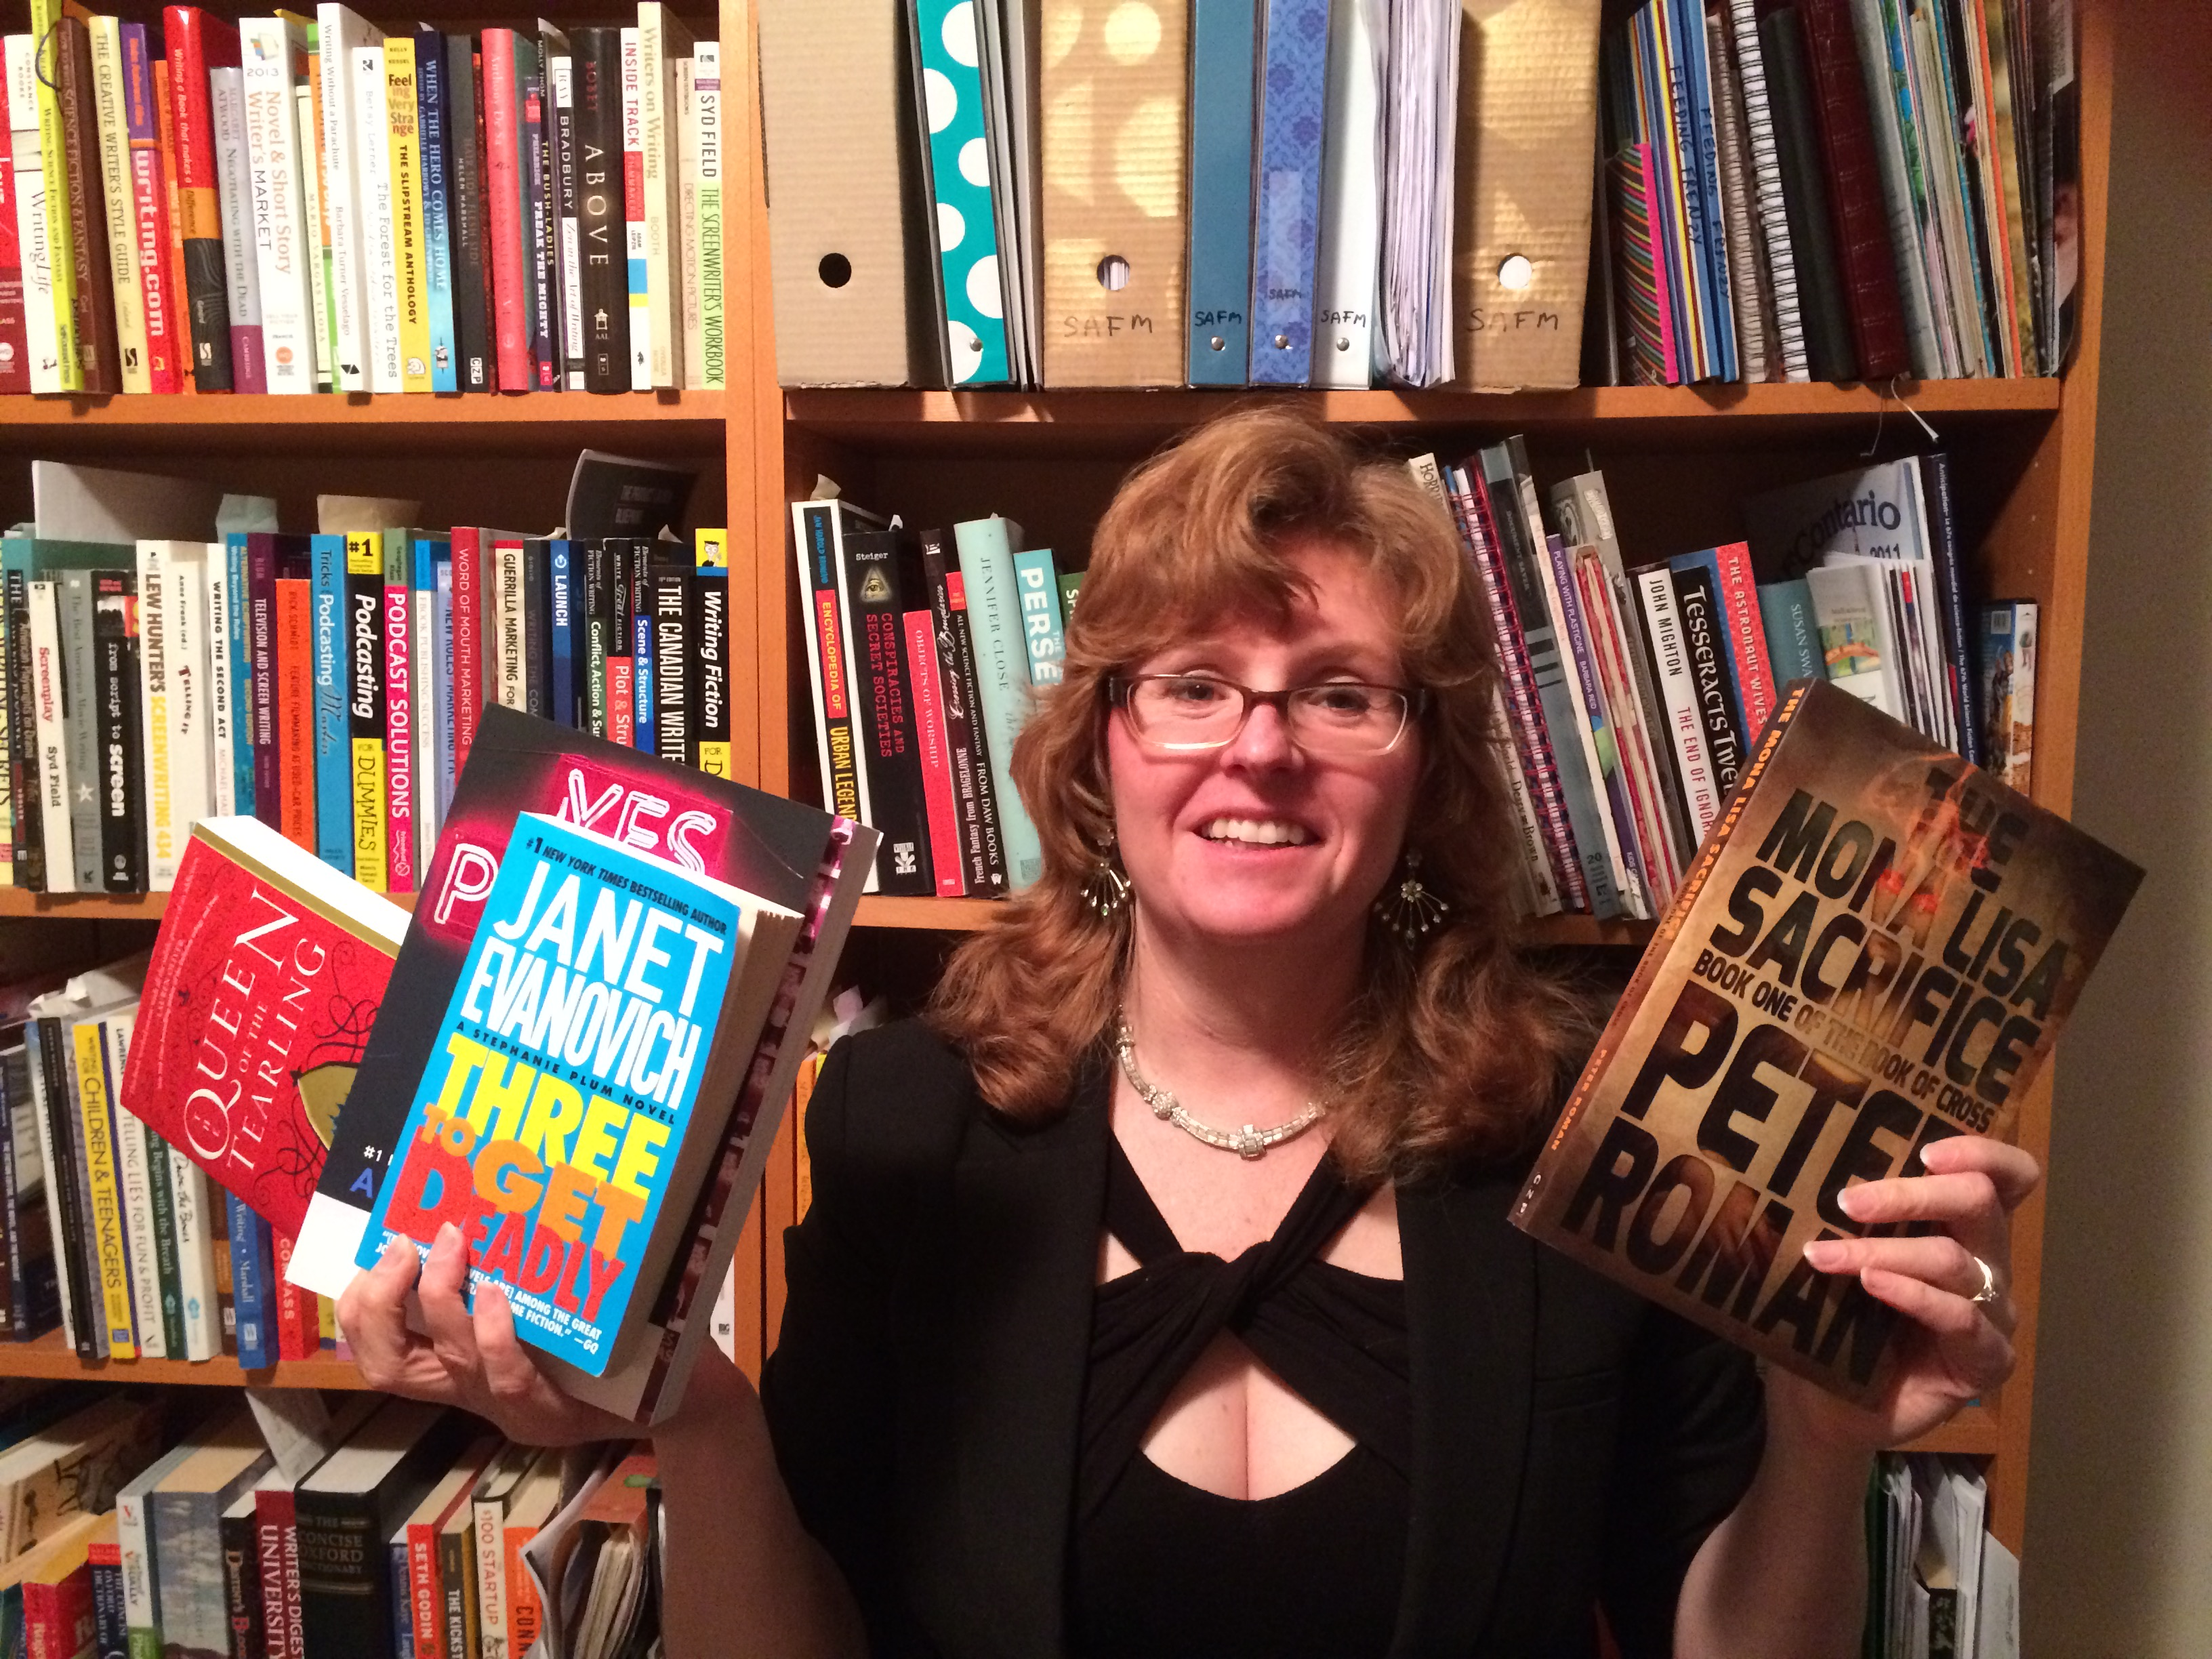 Maaja Wentz, posing with free book prizes for the Bookapalooza book fair